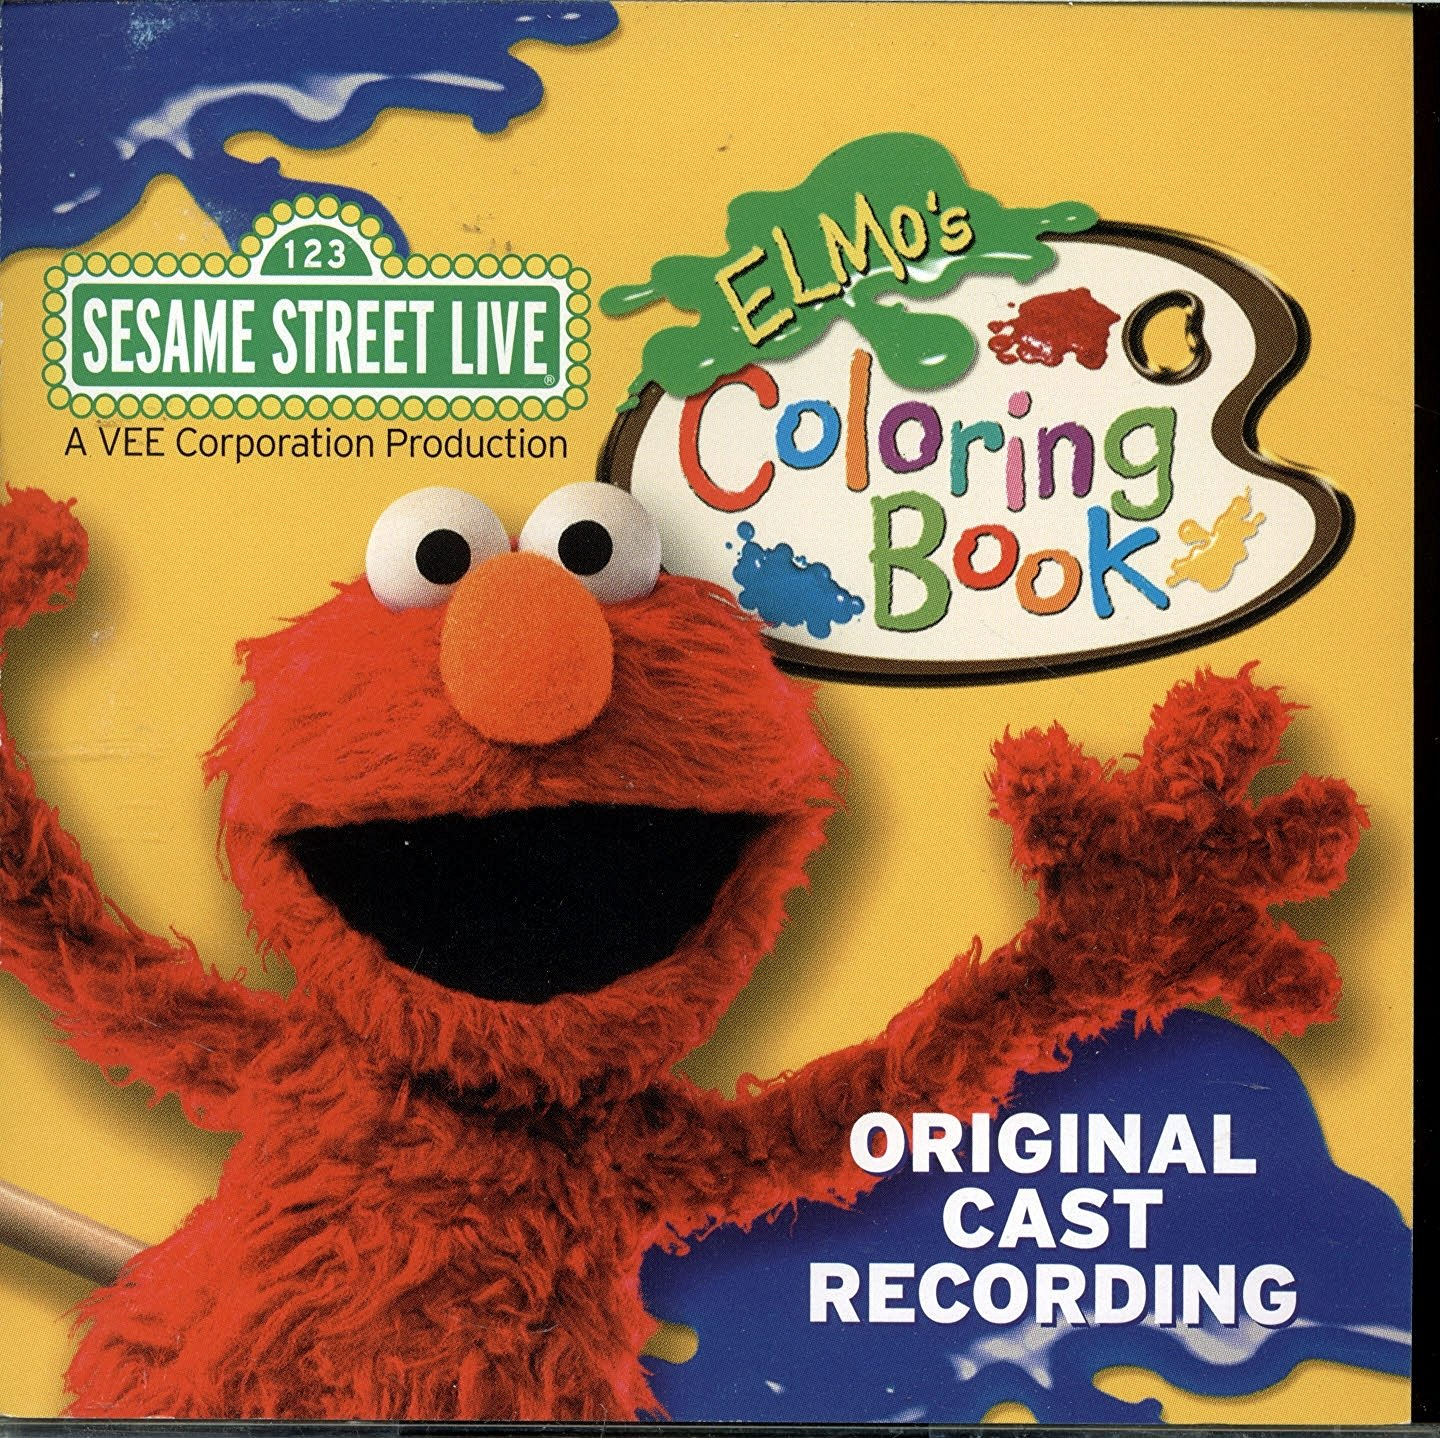 Sesame Street Coloring Books Muppet Wiki - Worksheet & Coloring Pages